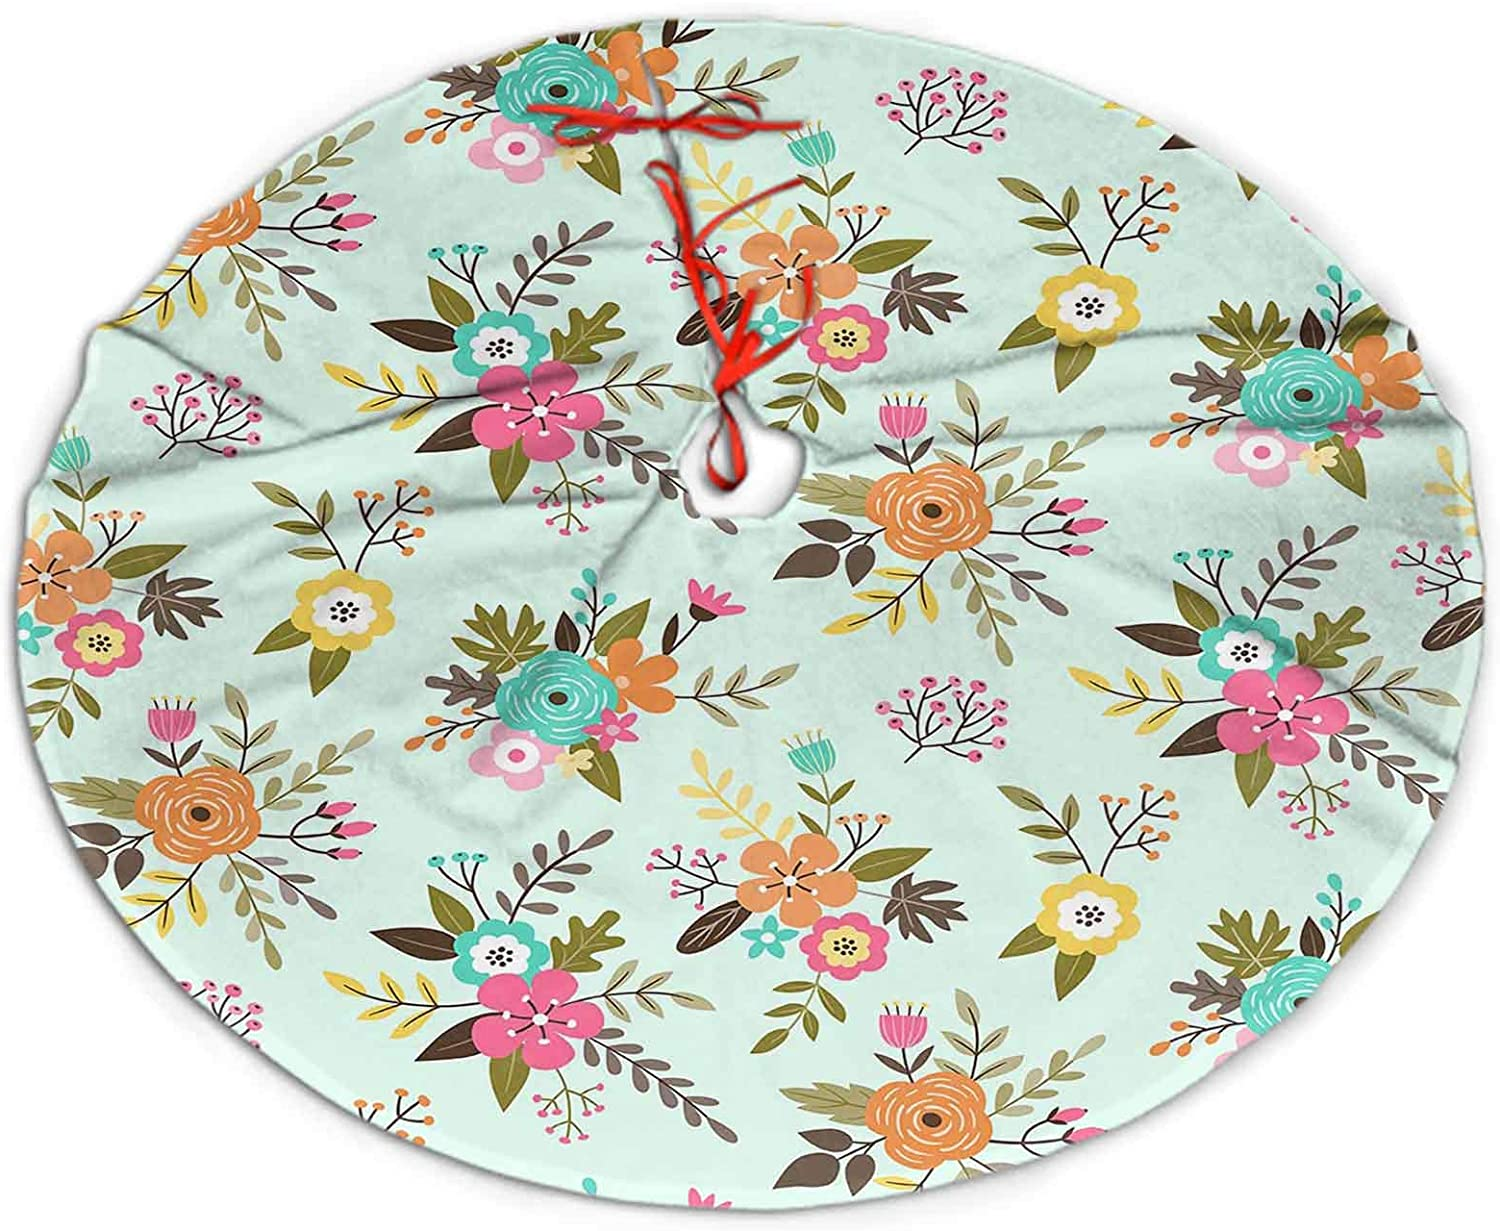 SoSung Christmas Tree Skirt Fabric Floral Pattern Cute Colorful Bouquets of Flowers for Christmas Tree Decorations 30